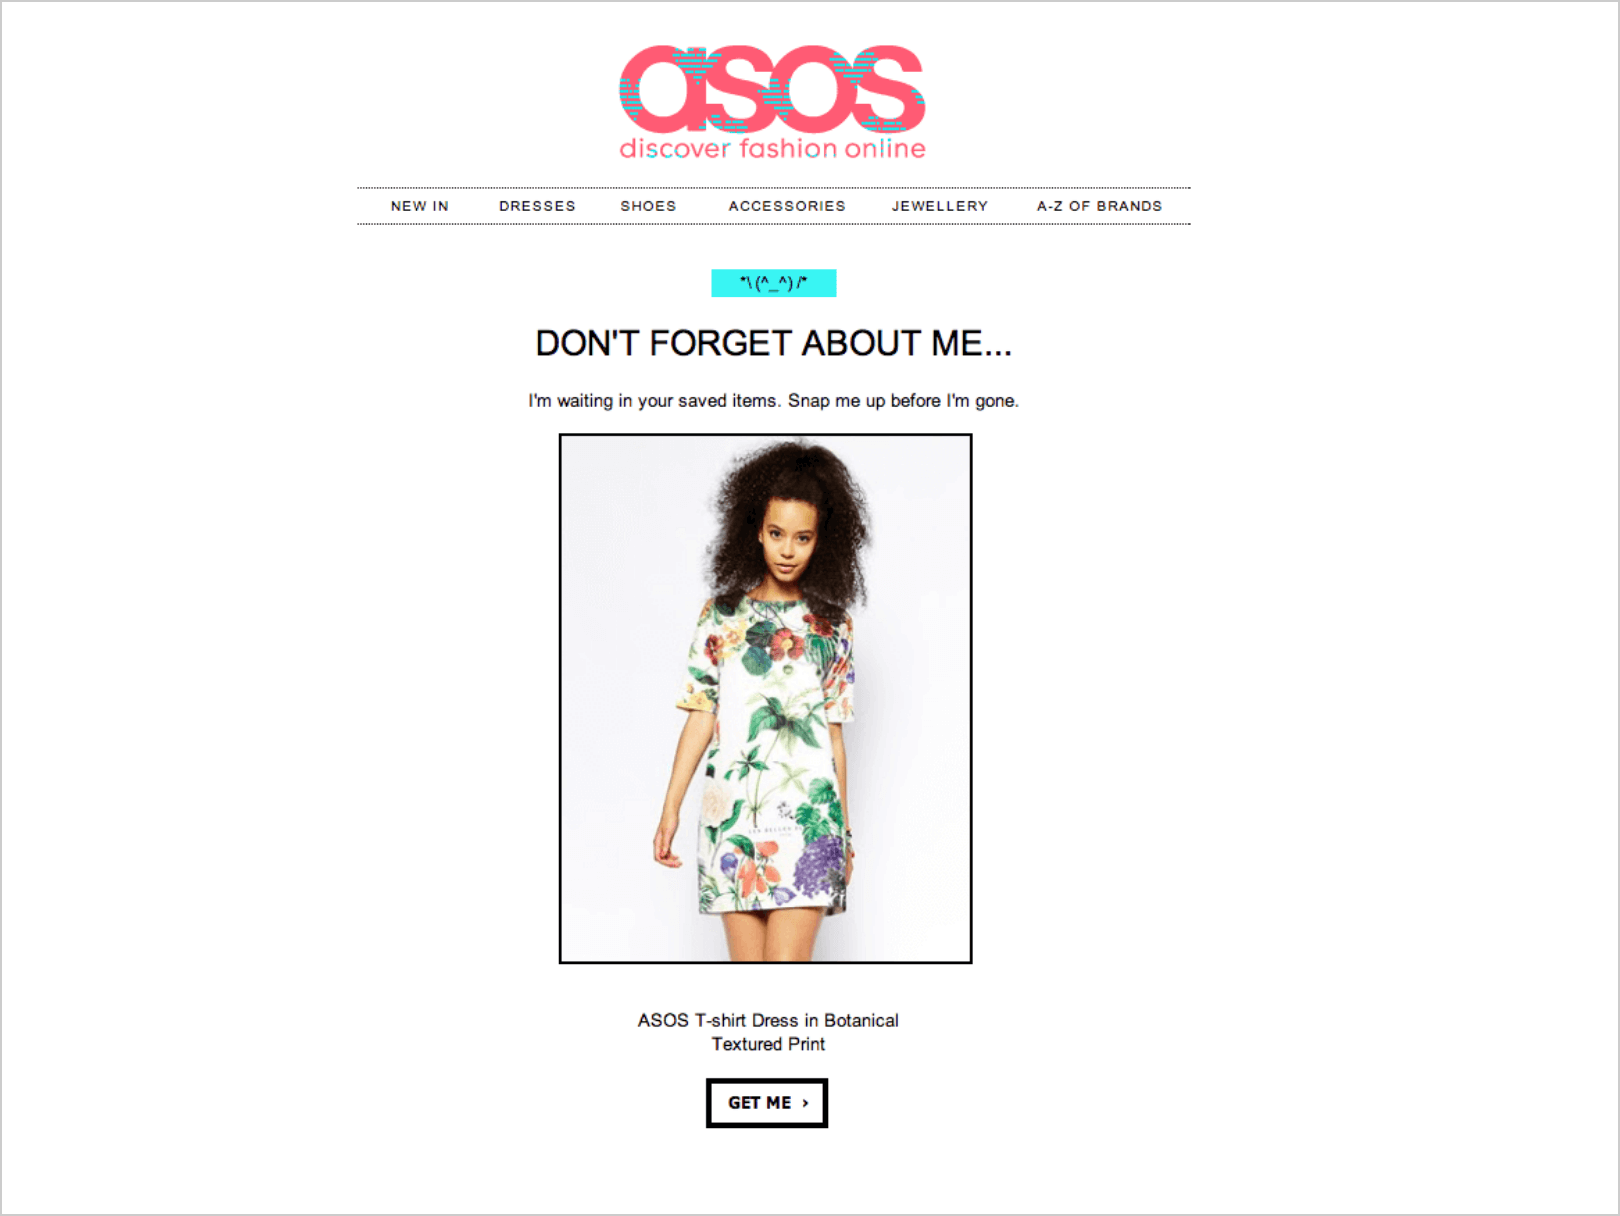 asos email marketing campaign